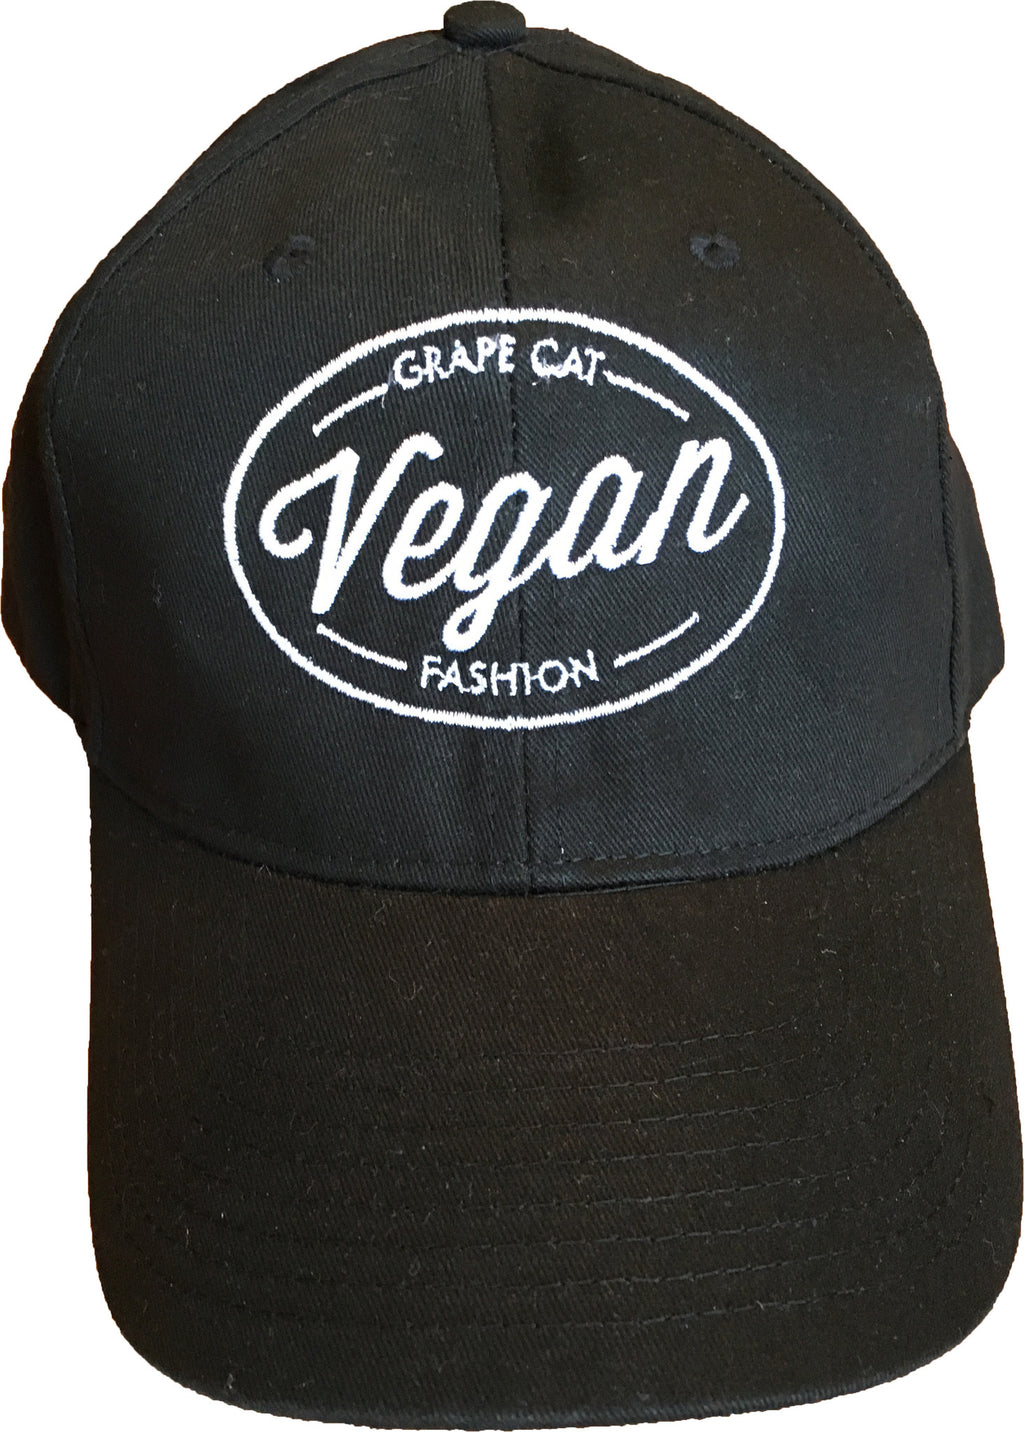 Vegan Baseball Caps, Hats, Grape Cat - Vegan Grape Cat